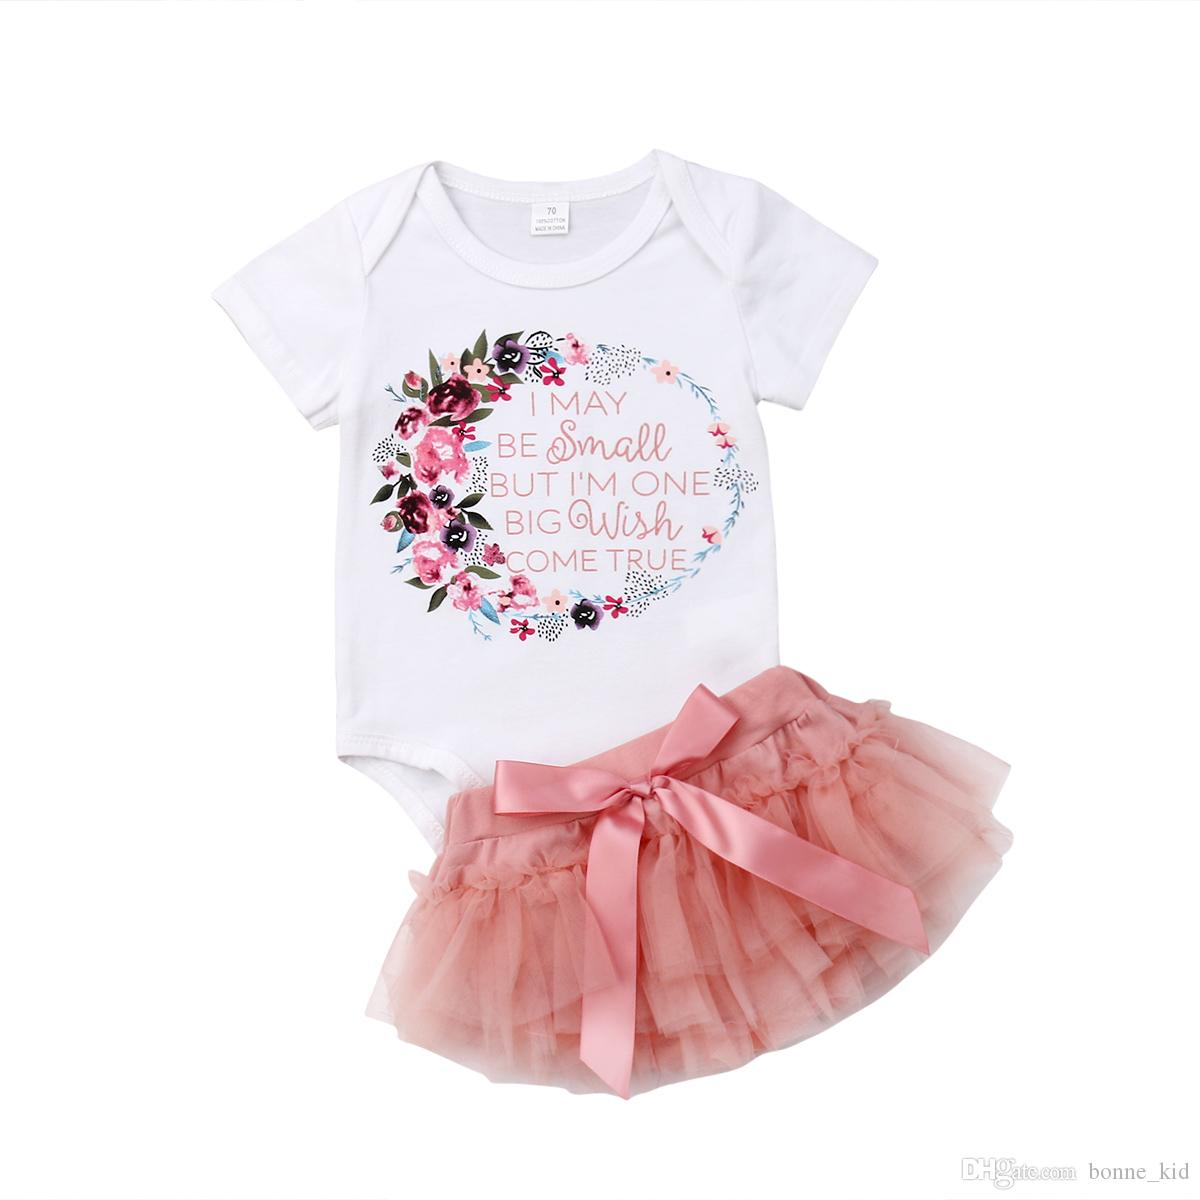 52916e590bc 2019 Newborn Baby Girls Letter Print Floral Romper Pink Tutu Shorts Set  Flower Bowknot Summer Baby Girl Clothing Boutique Clothes 0 18M From  Bonne kid